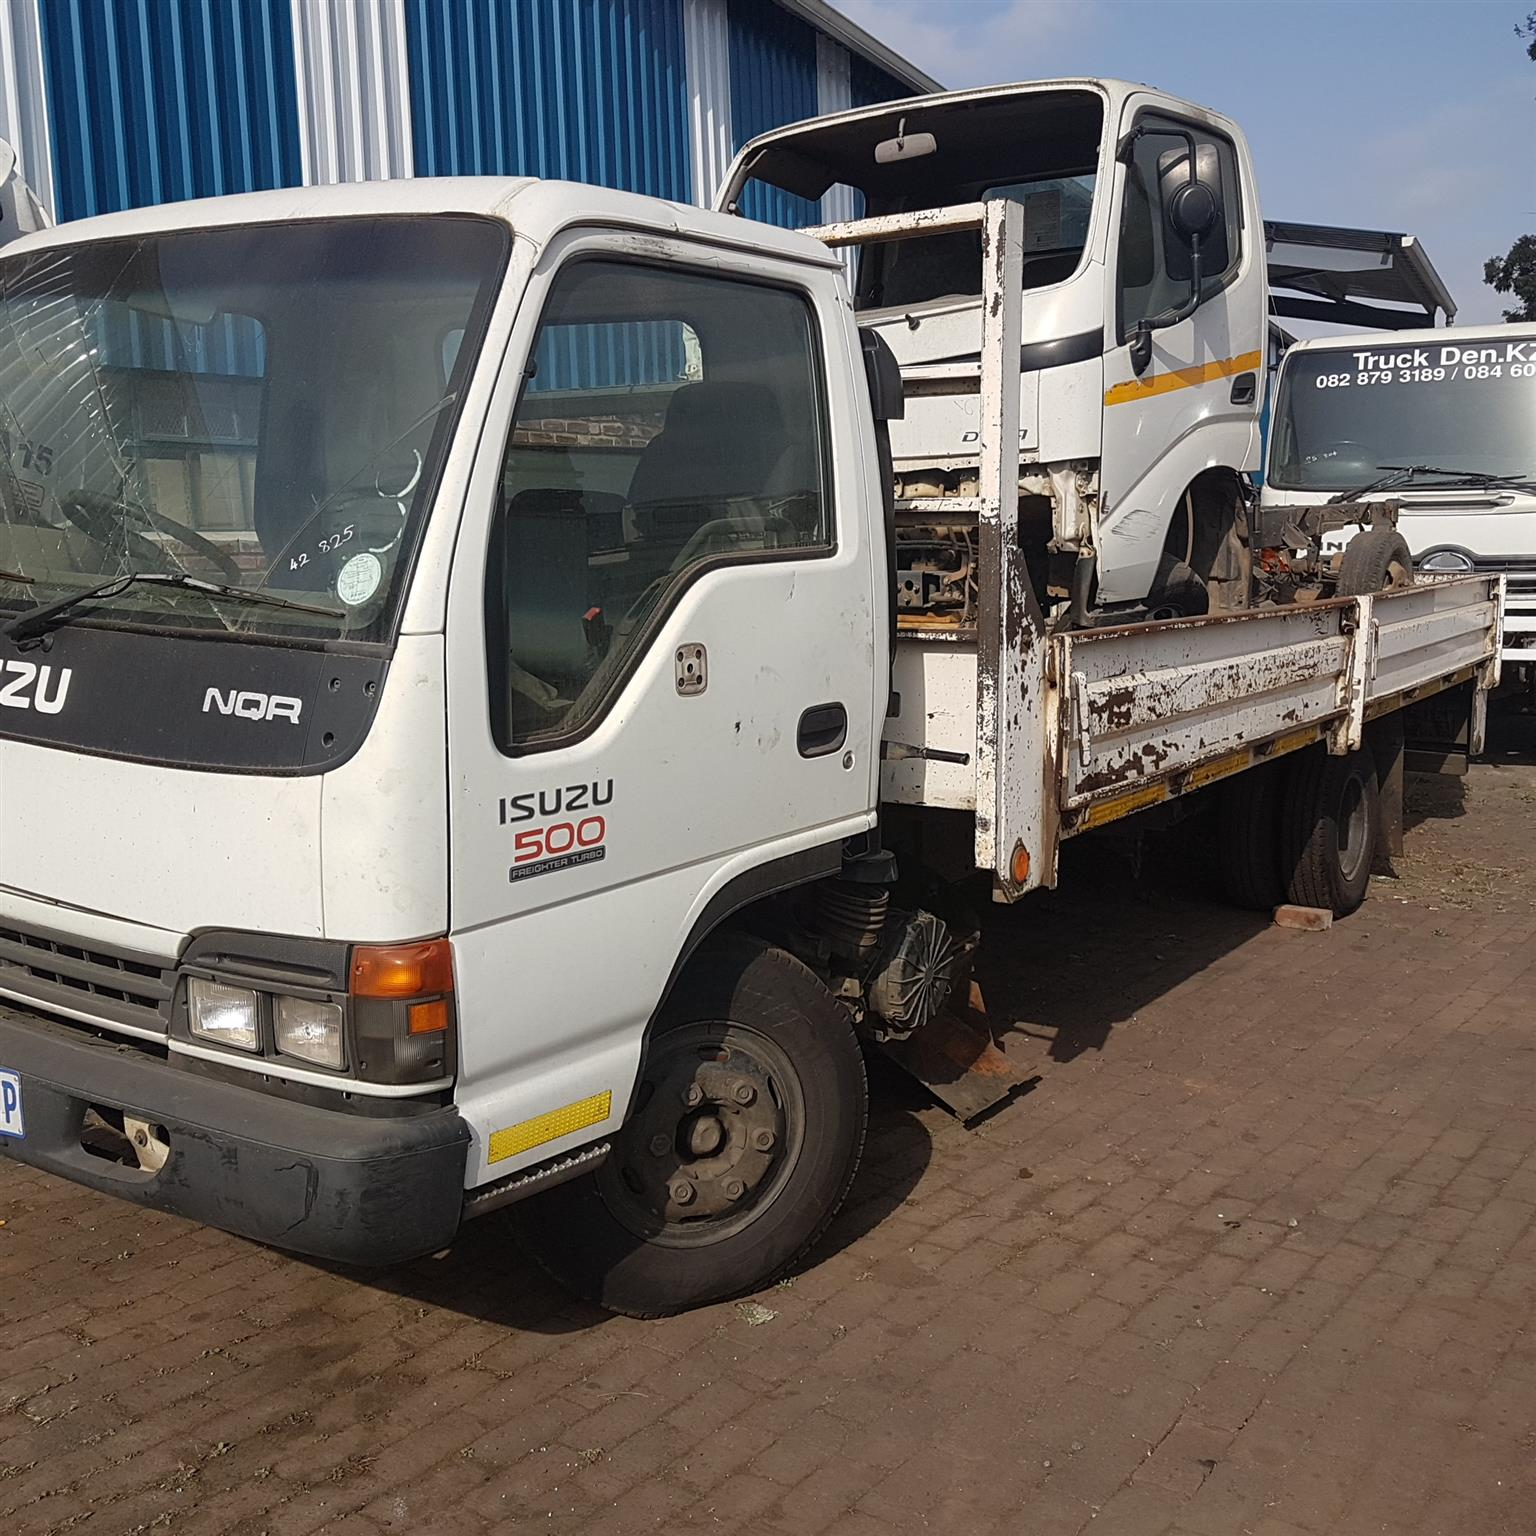 hight resolution of isuzu nqr 500 truck stripping 4 spares 4he1t engine 6 sp gear box